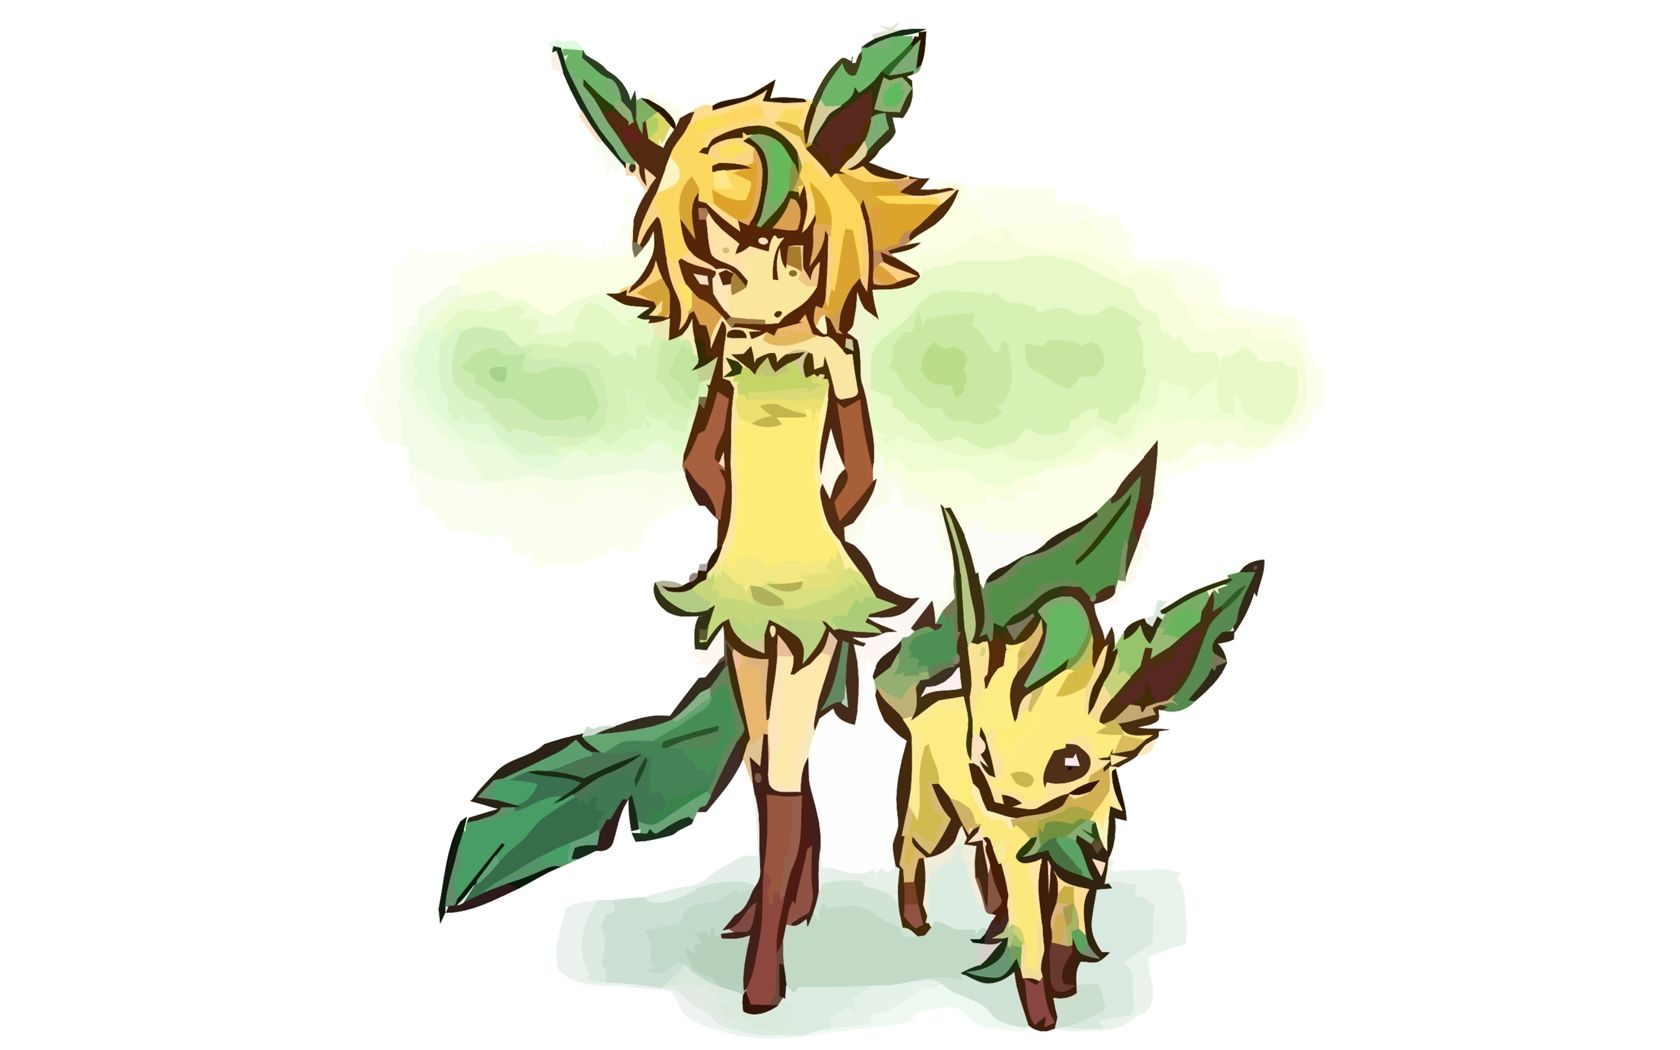 1680x1050 Leafeon - Pokémon - Wallpaper #140945 - Zerochan Anime Image Board